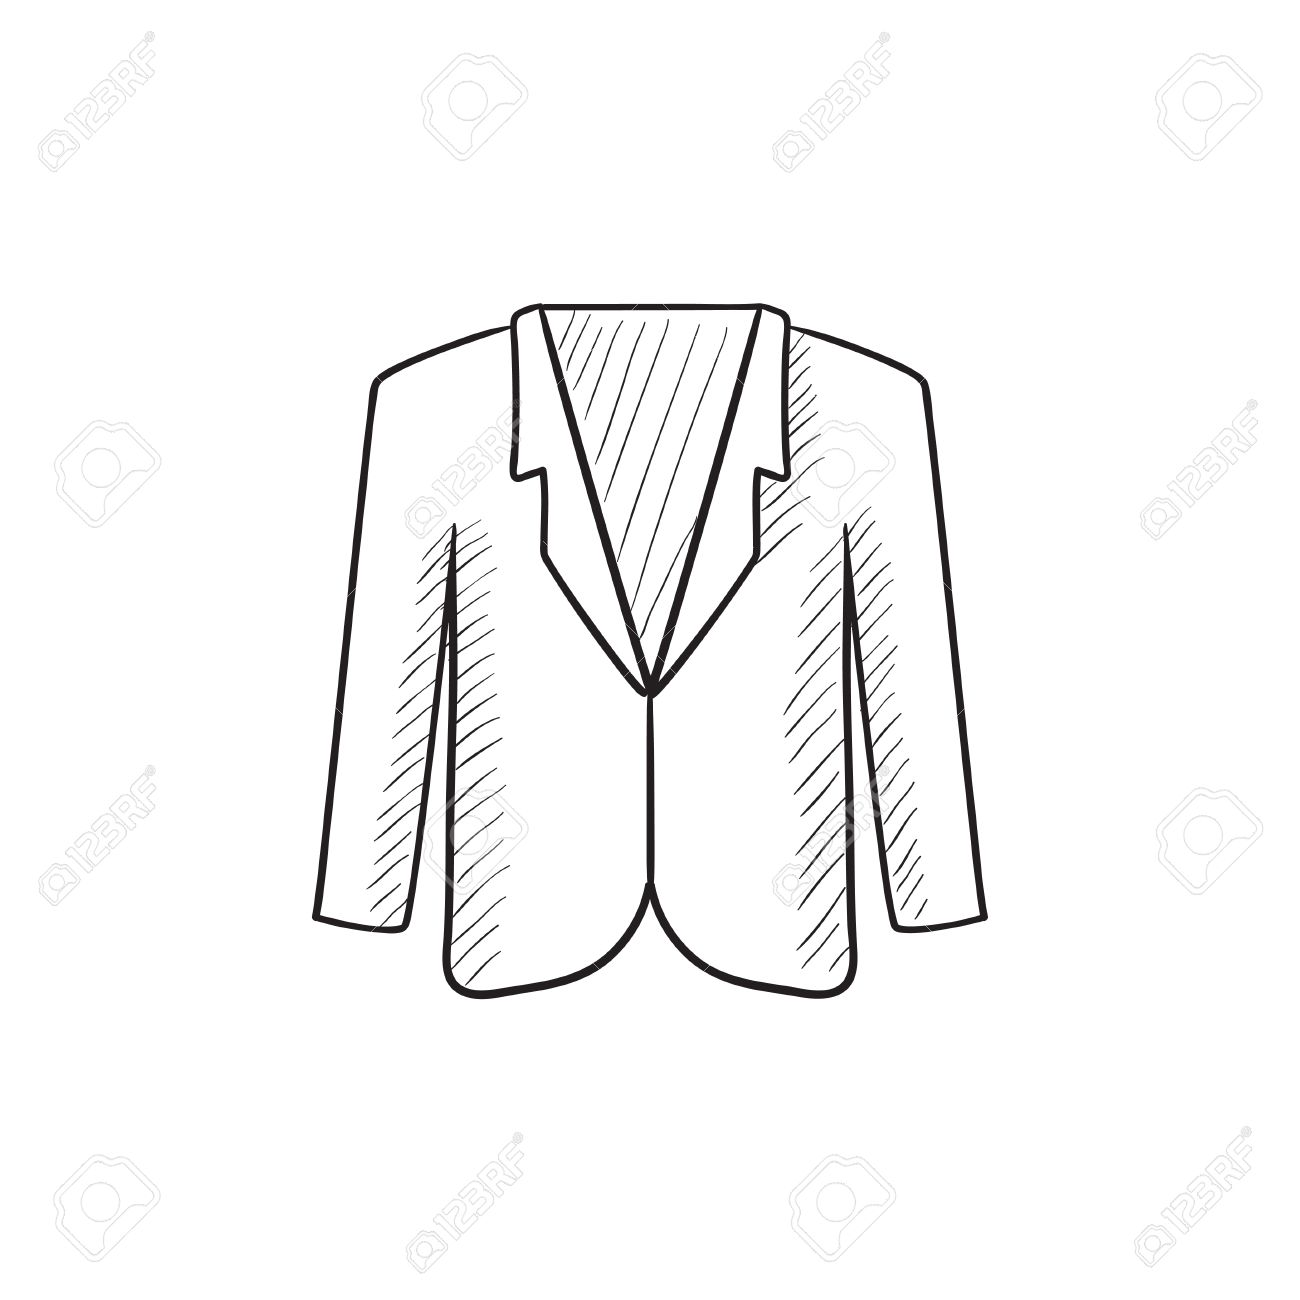 male jacket vector sketch icon isolated on background hand drawn